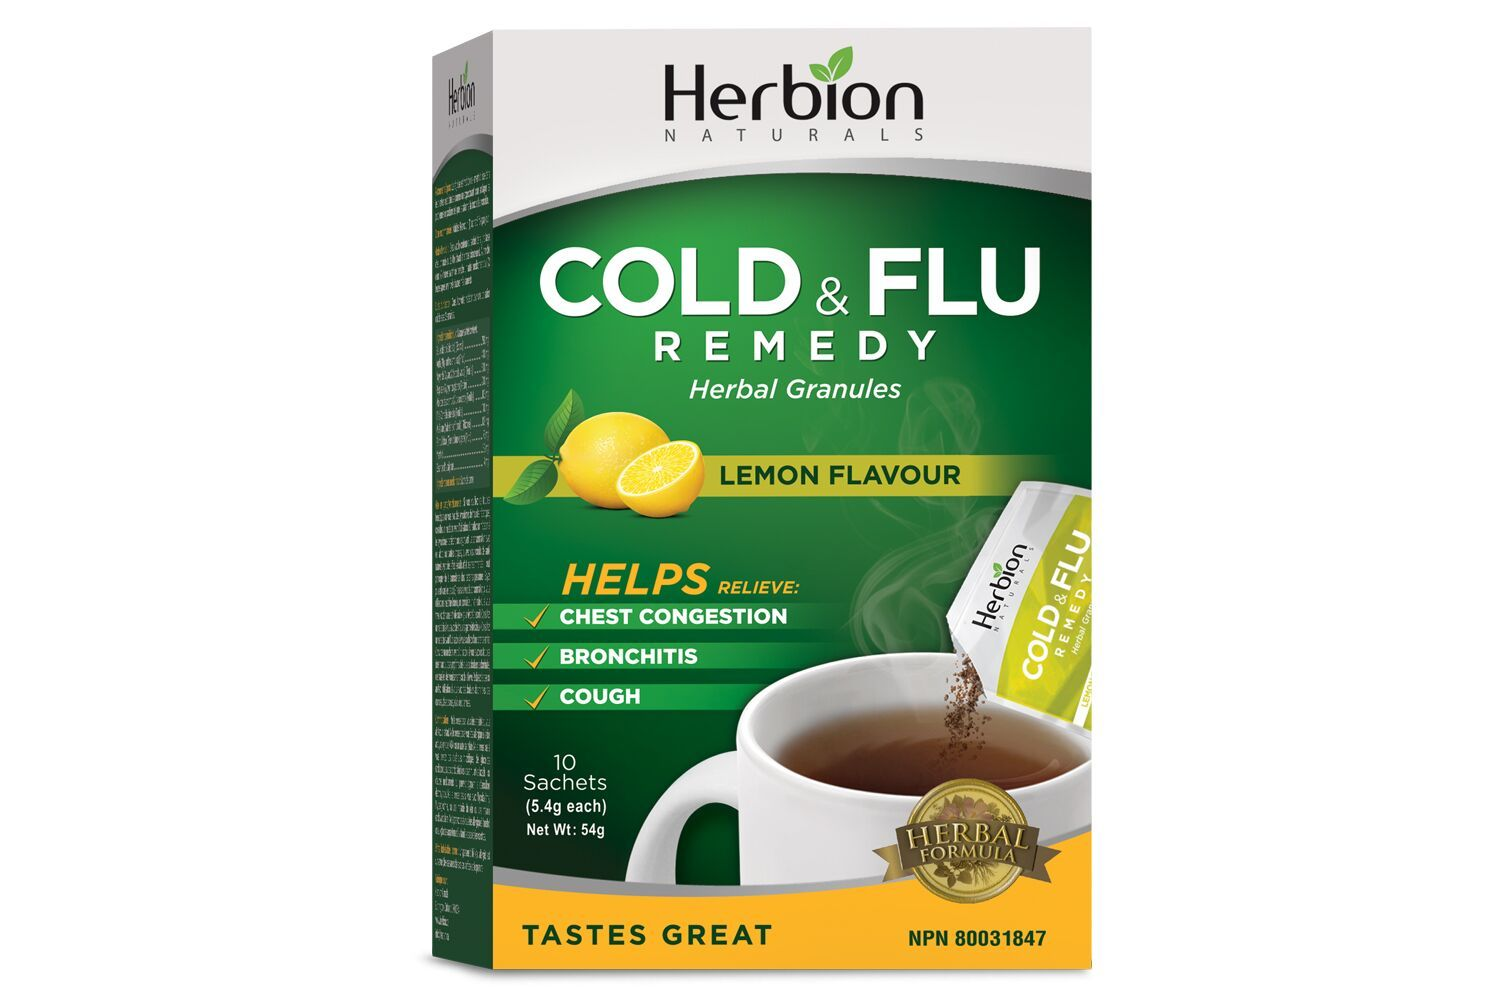 Supplements & Vitamins - Herbion - Cold & Flu Remedy - Lemon Flavour, 10 Sachets